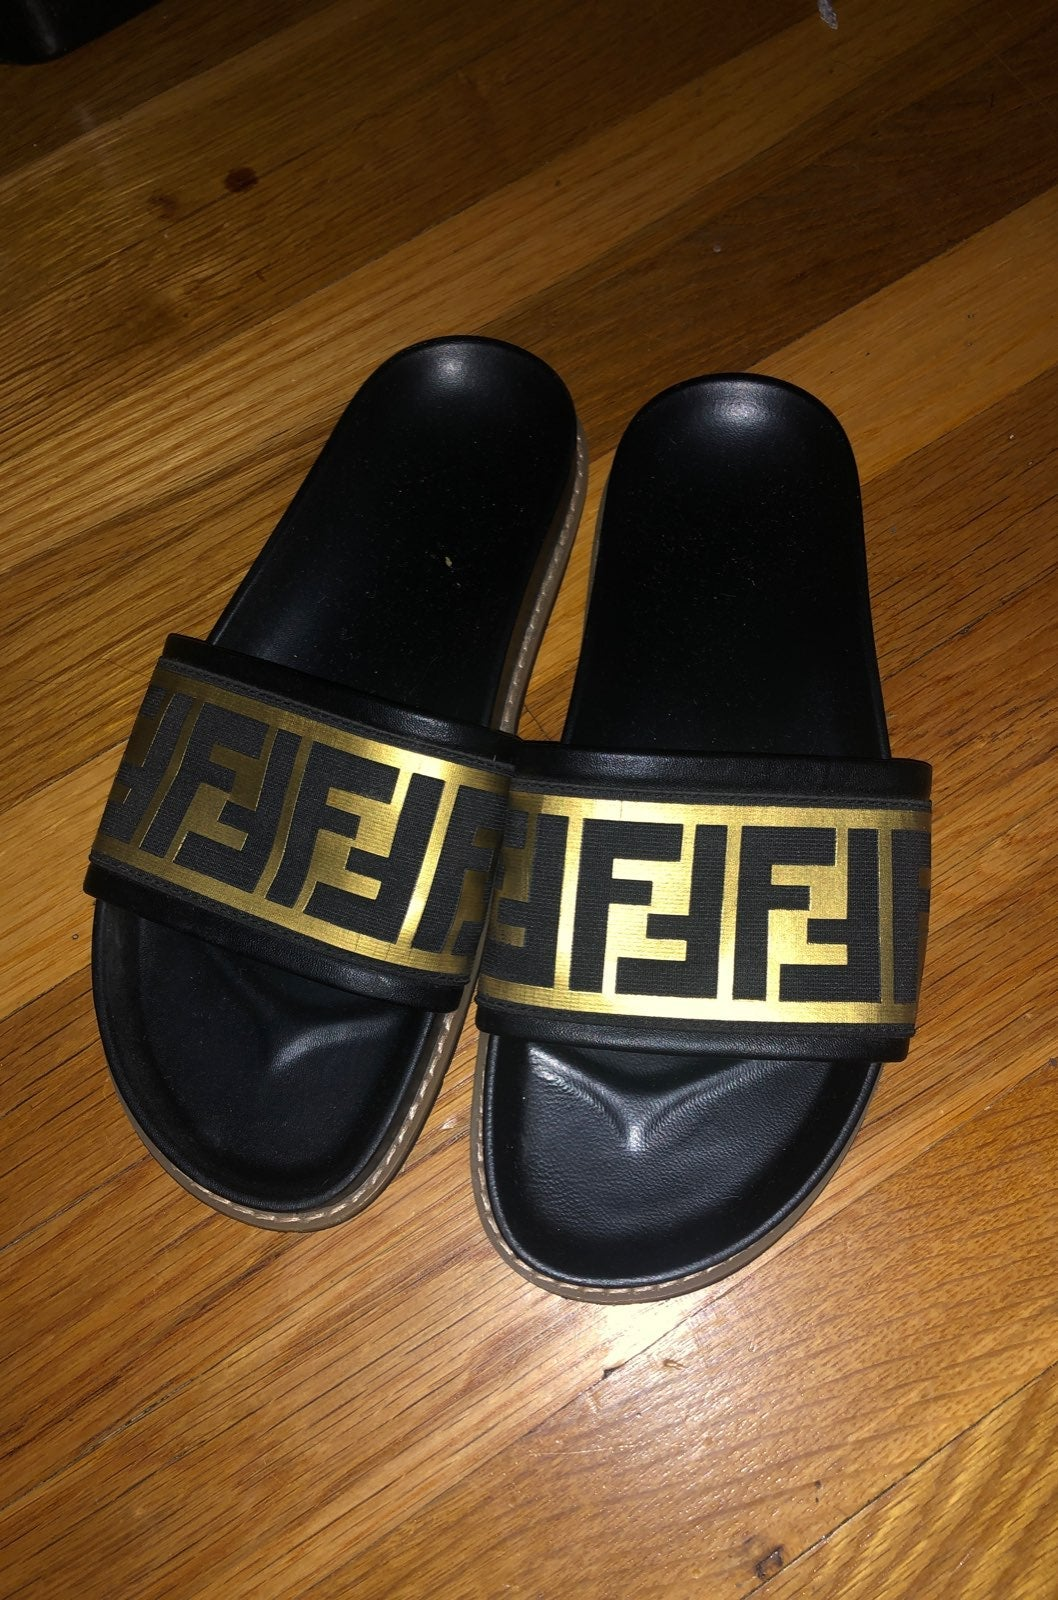 Womens black & gold printed slides sz 40